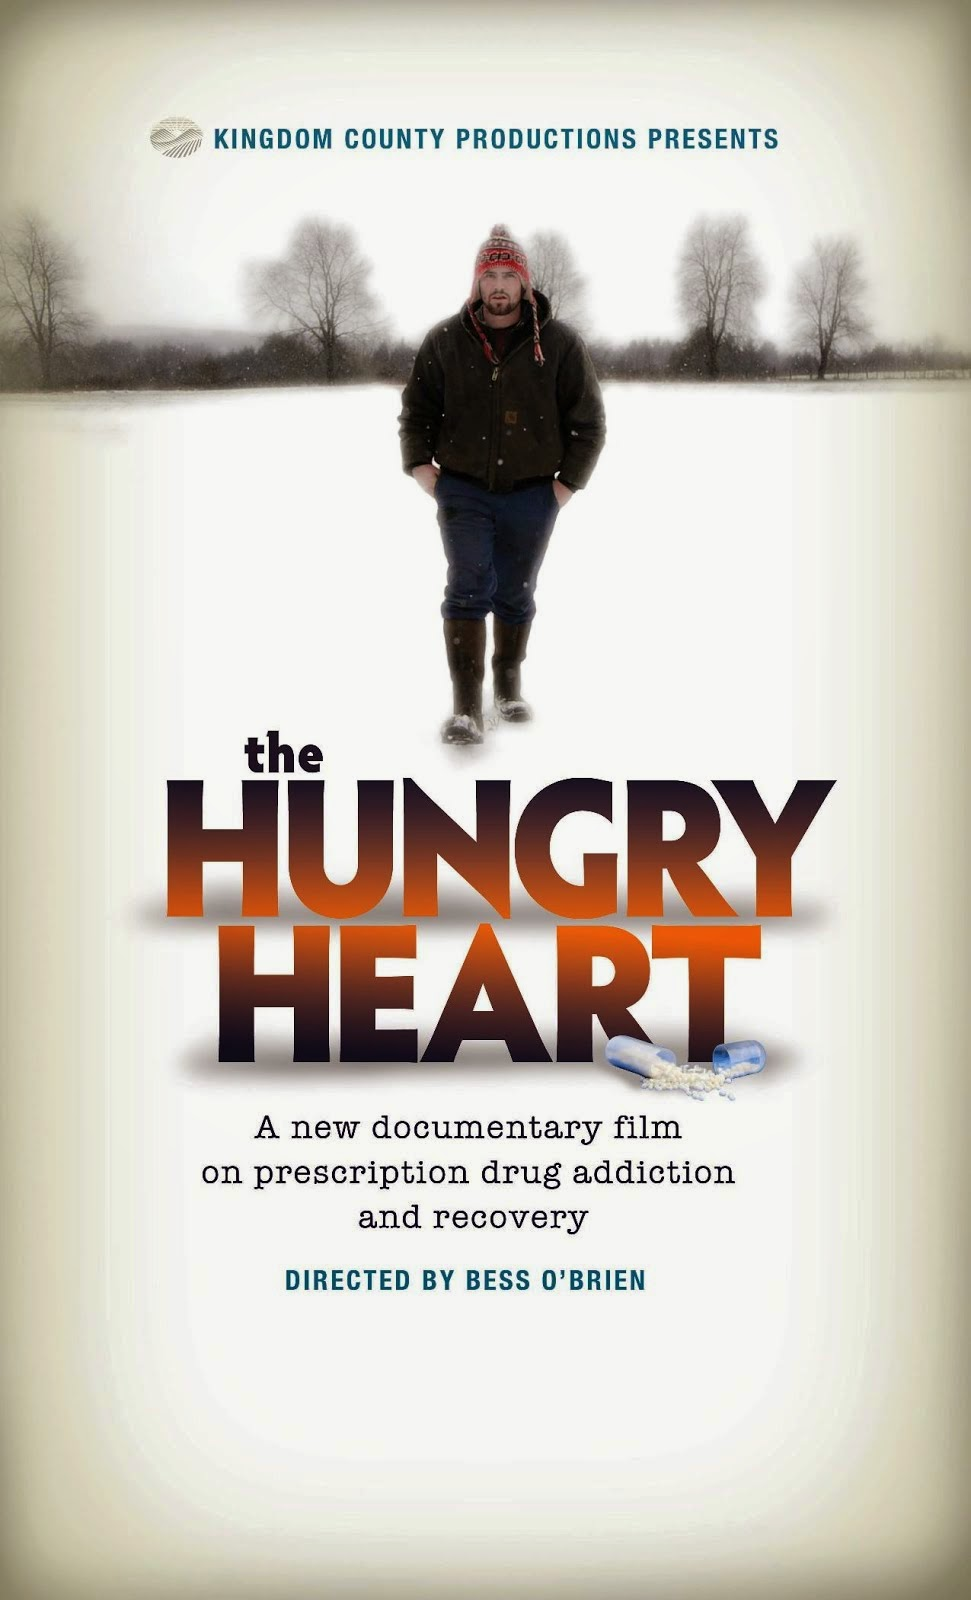 The Hungry Heart trailer